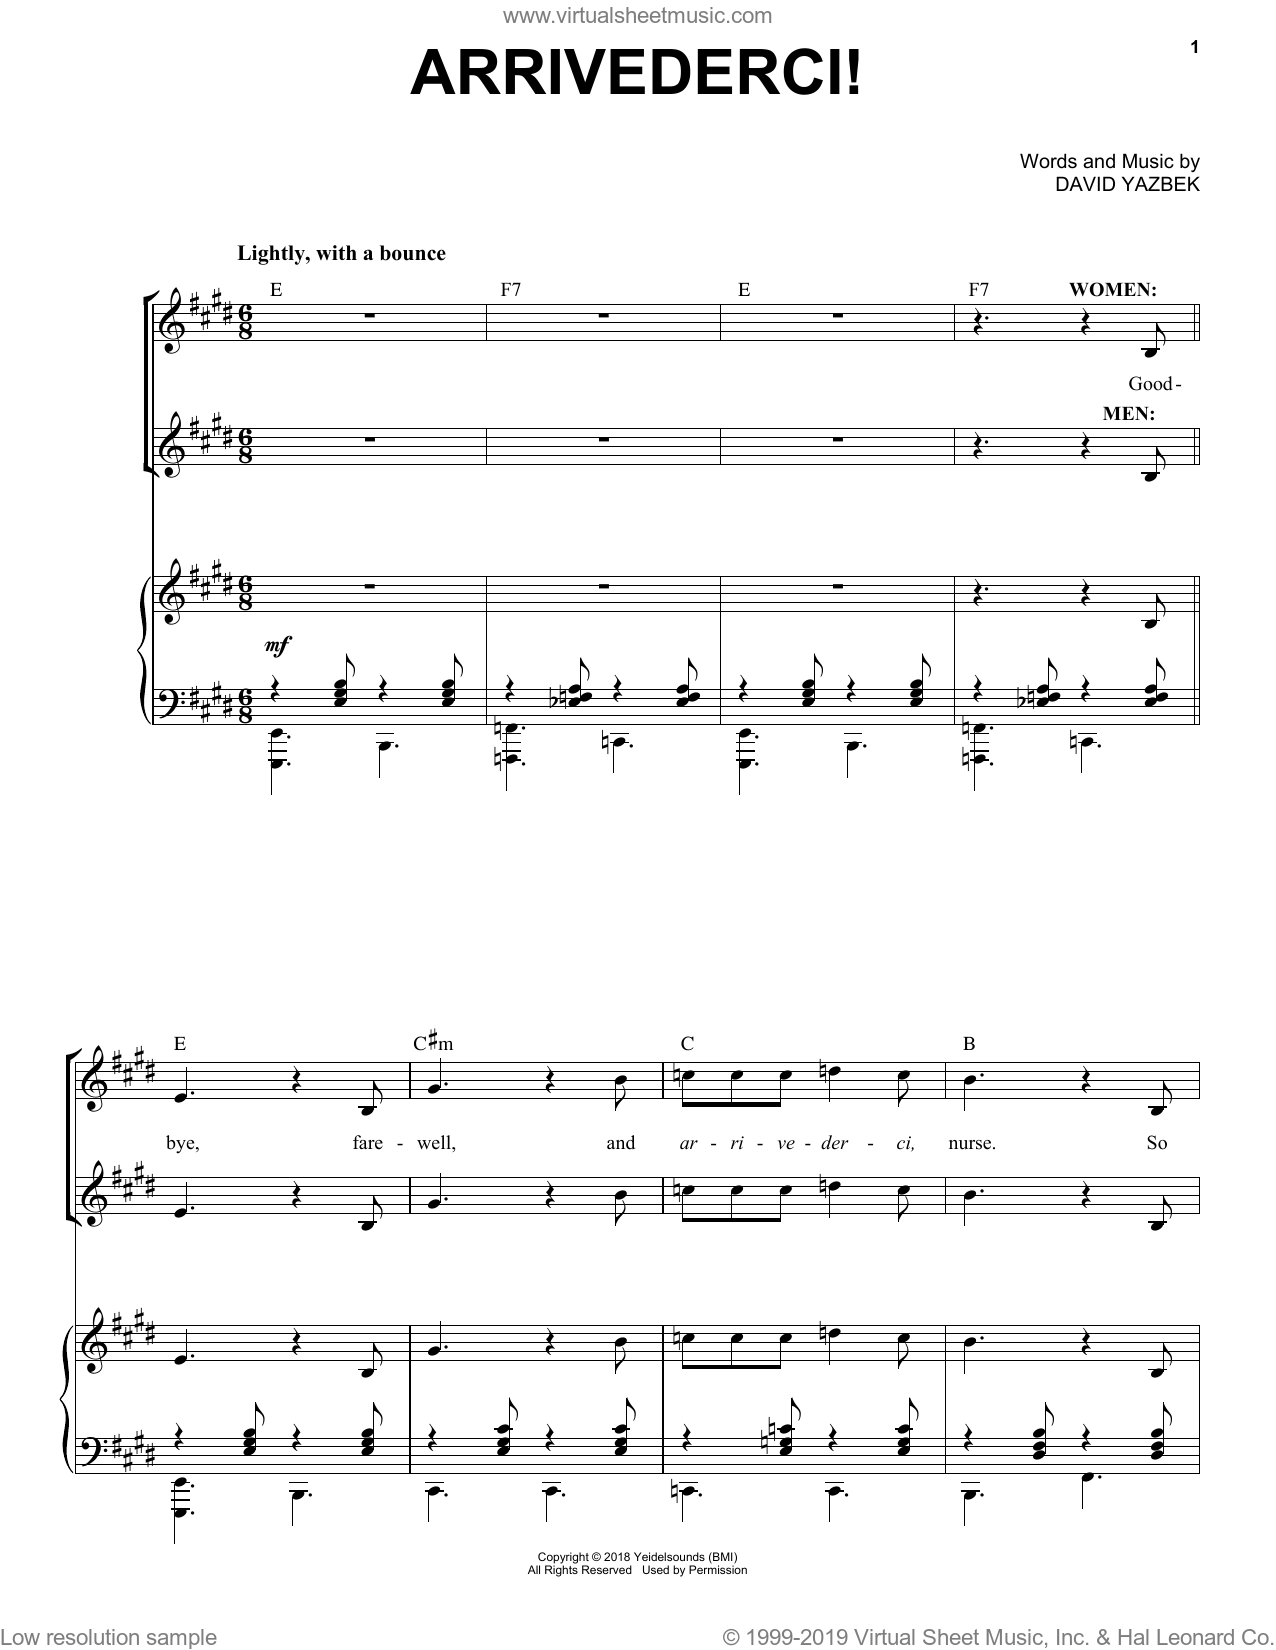 Arrivederci! (from the musical Tootsie) sheet music for voice and piano by David Yazbek, intermediate skill level